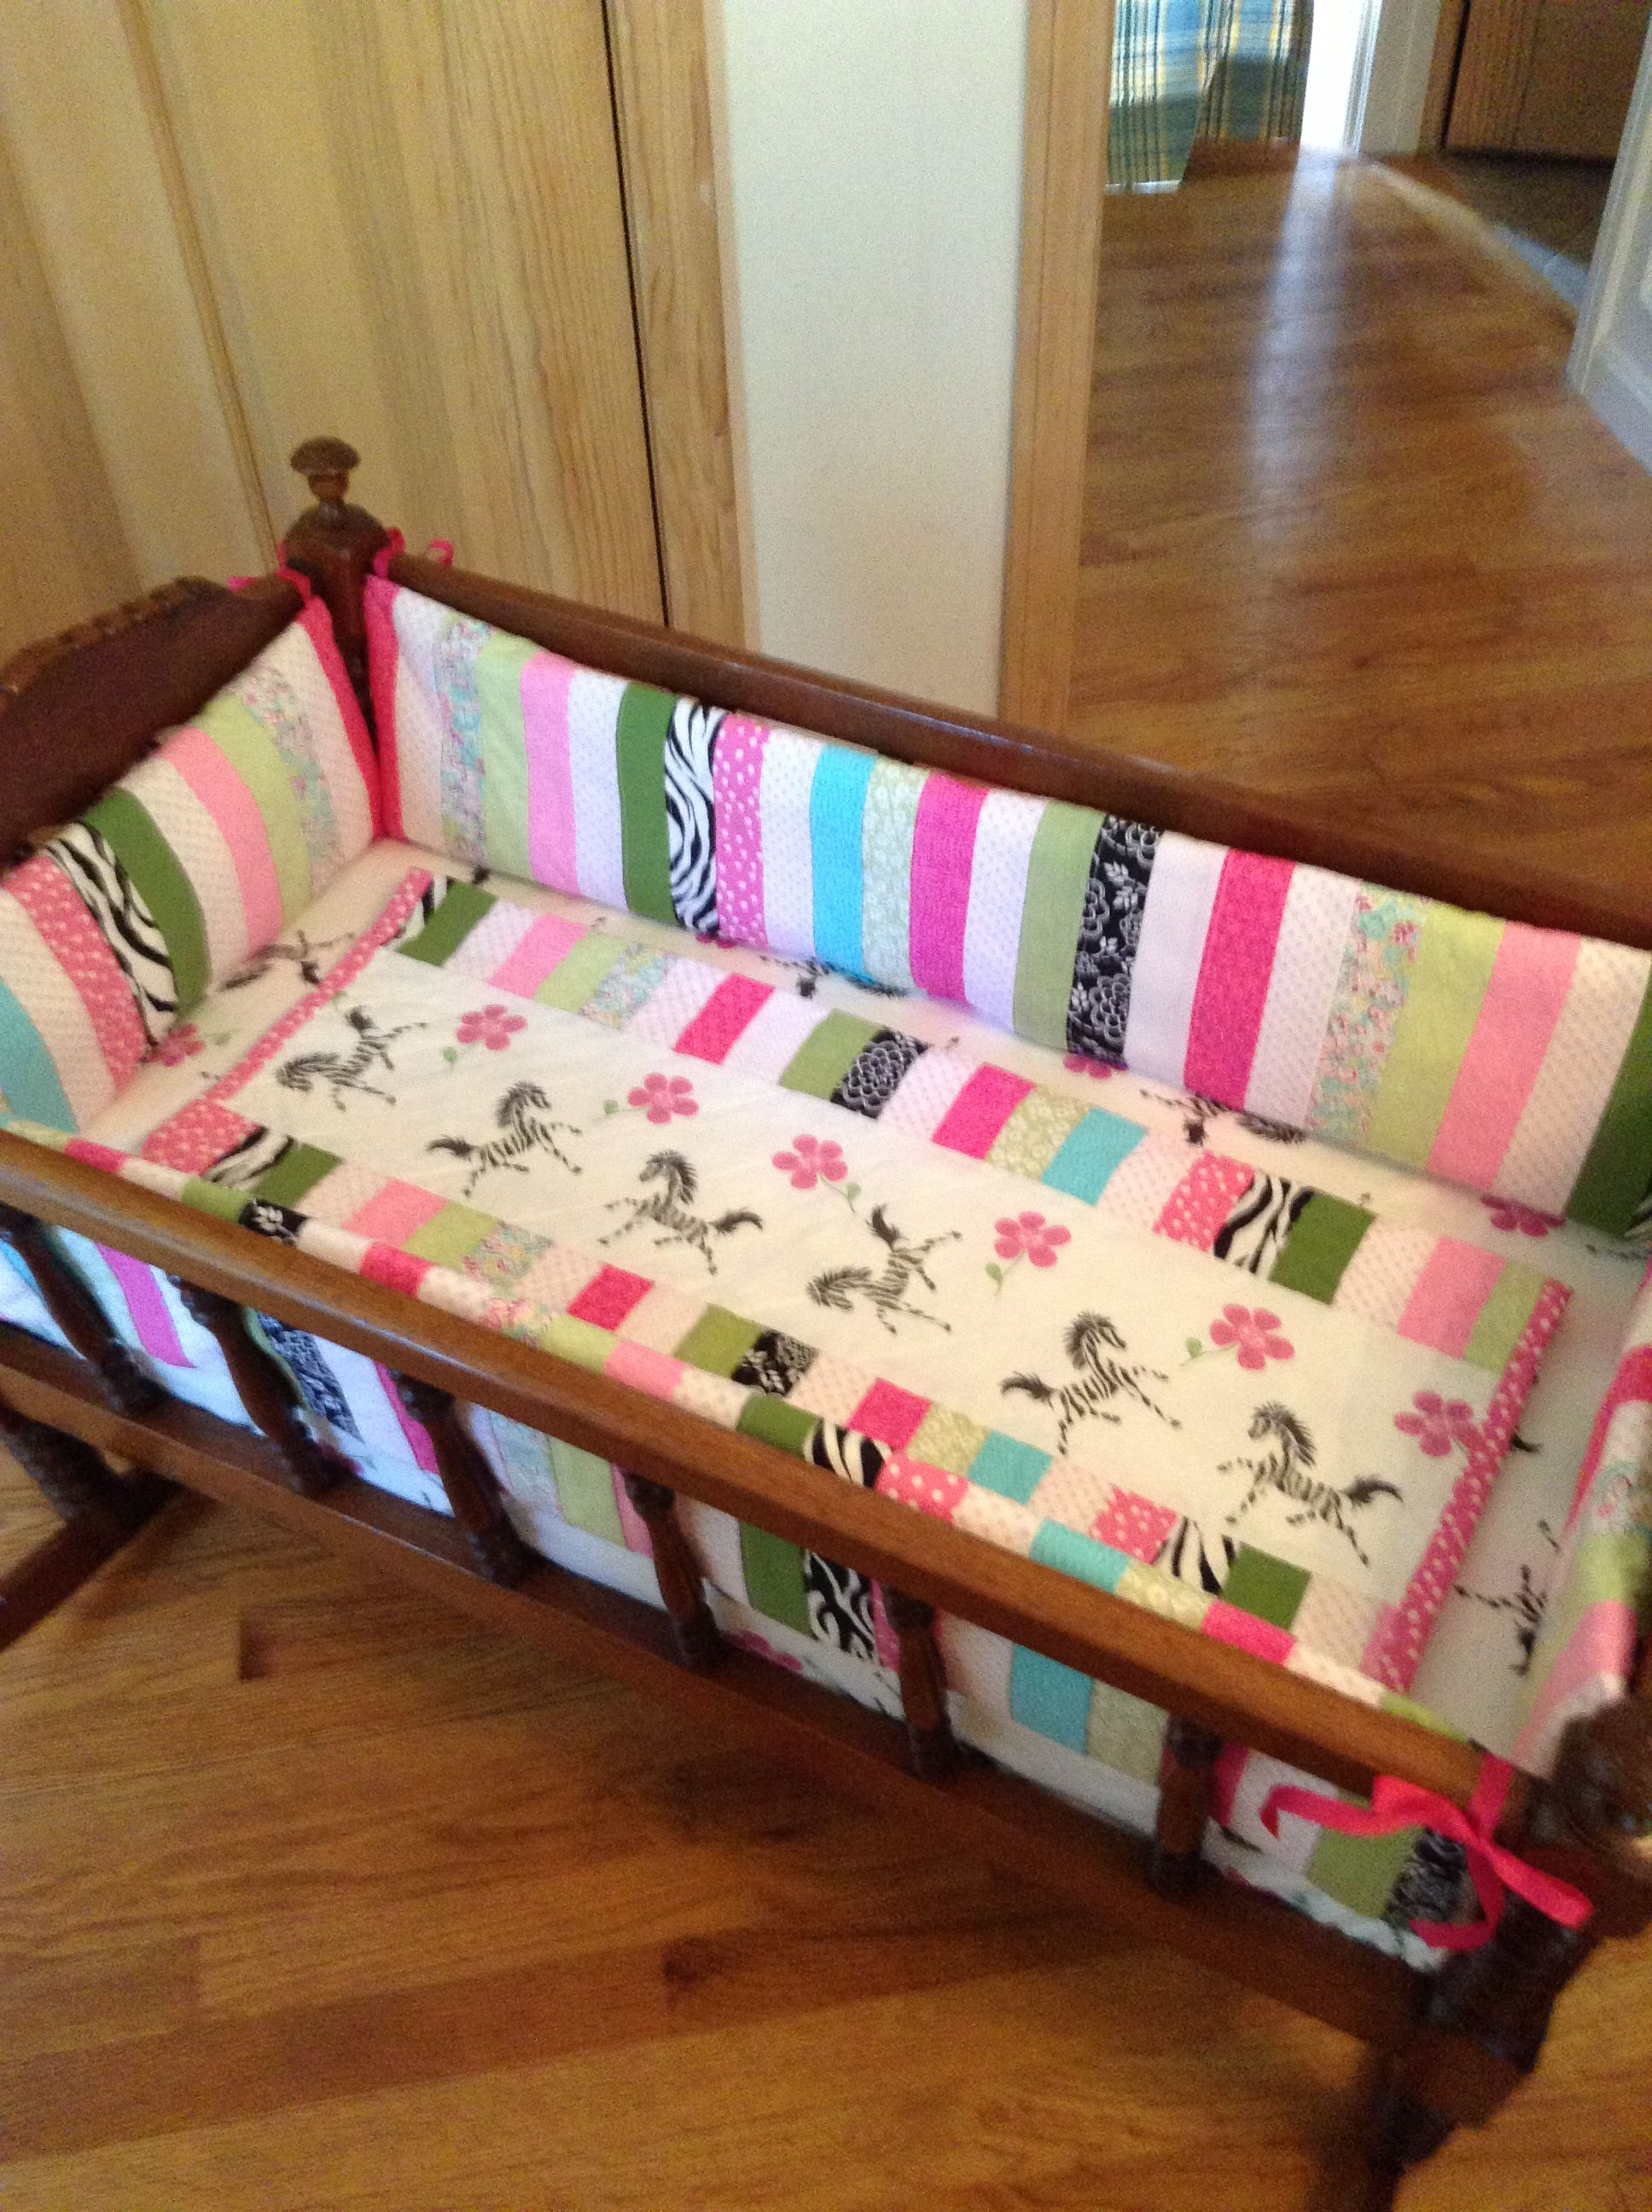 Bedside Step Stools For Adults: Samm's Cradle And Bedding